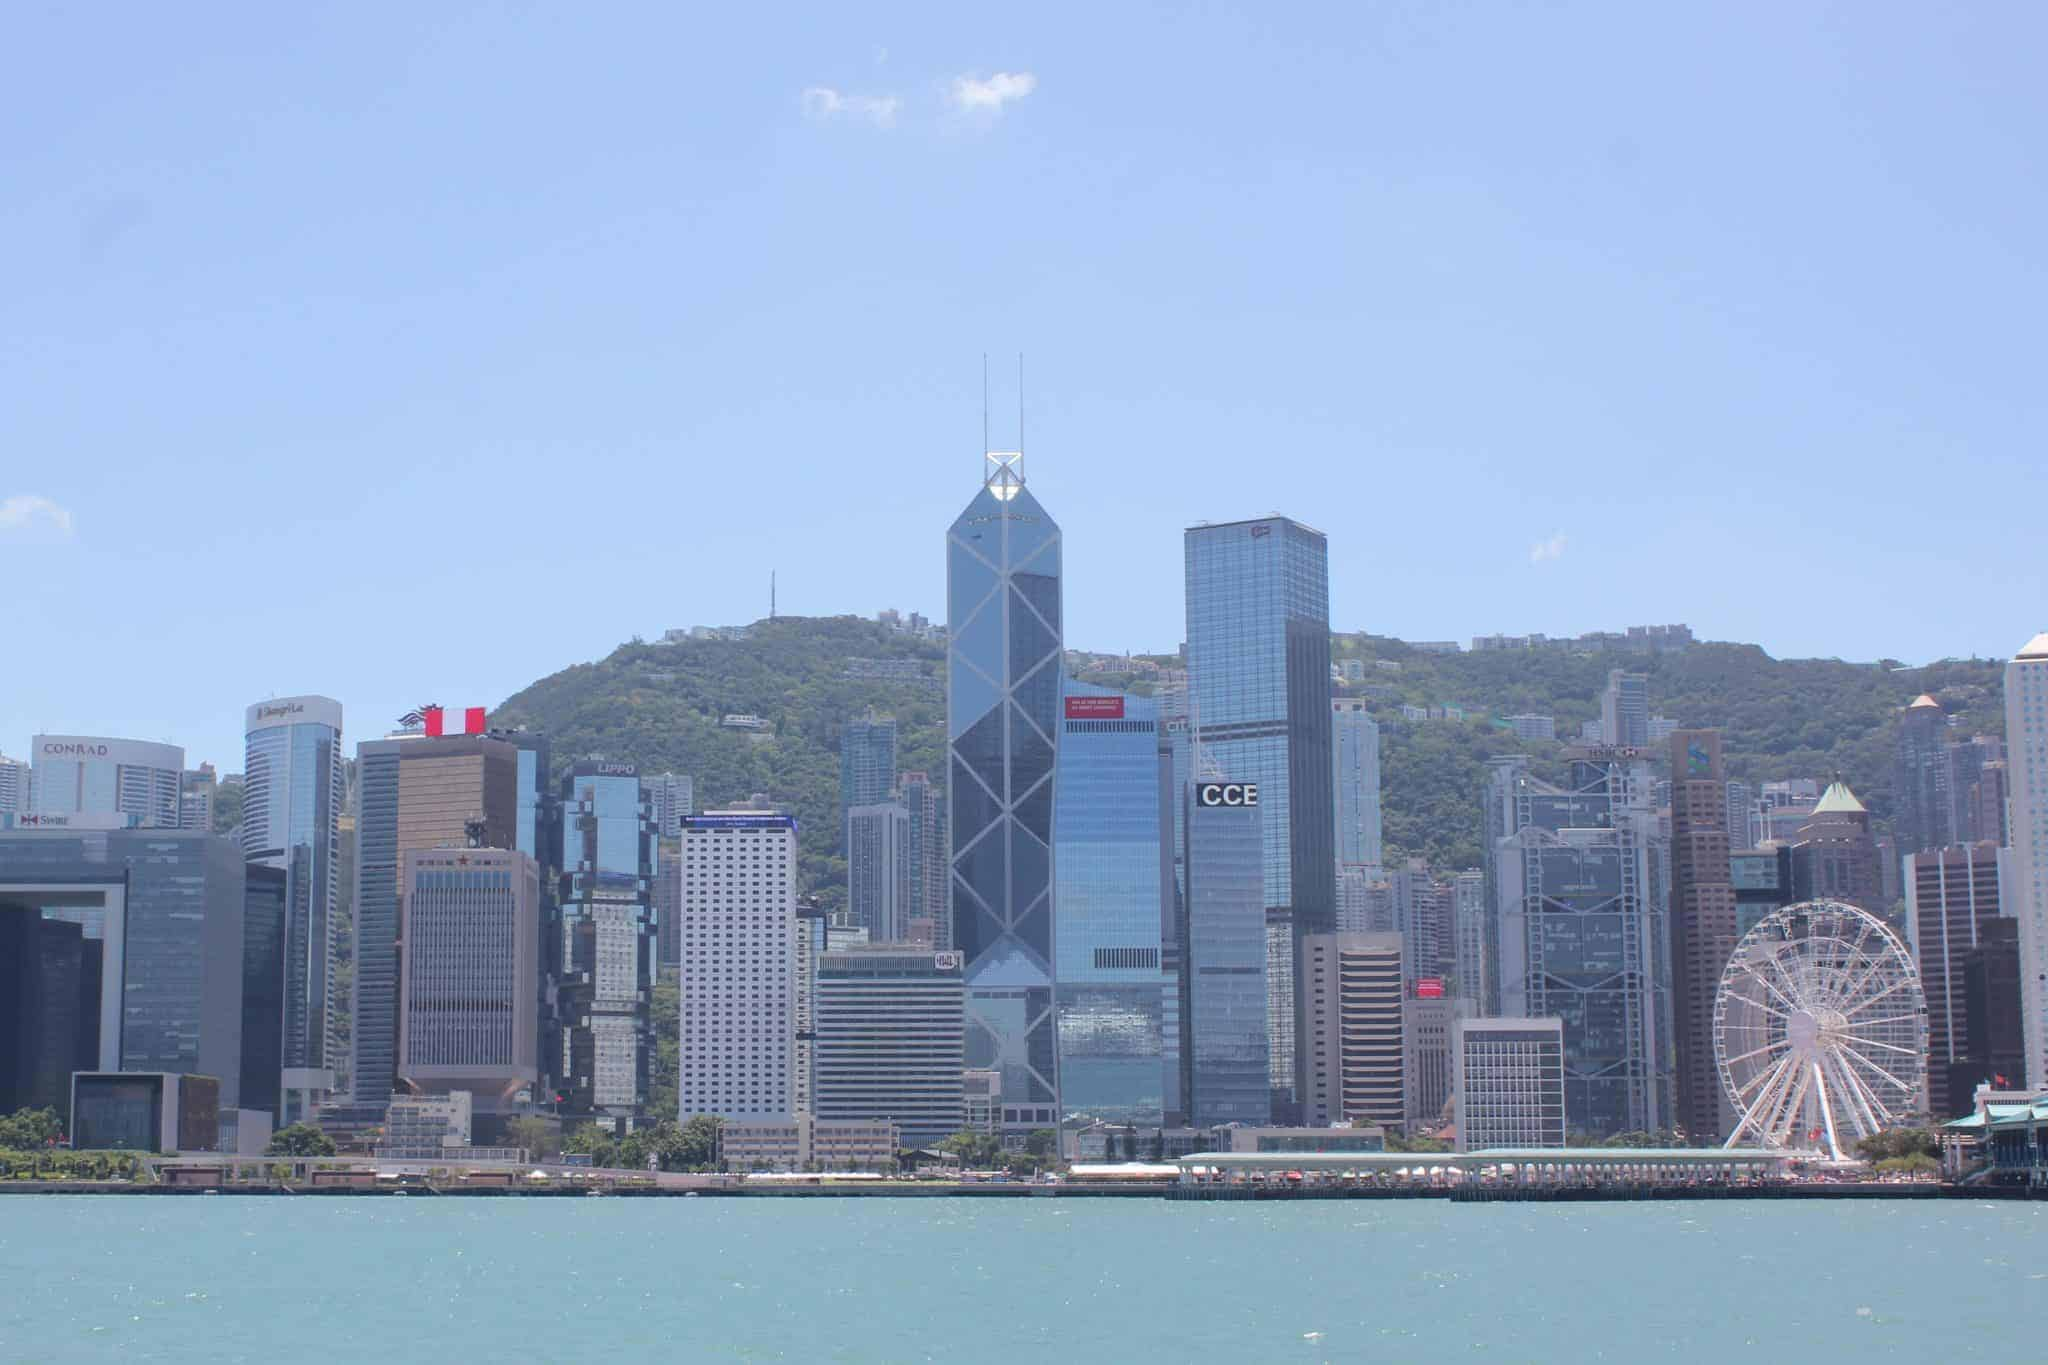 3 days in Hong kong, what to do in Hong Kong, Hong Kong itinerary 3 days, hong kong itinerary, hong kong island, hong kong main land, where to stay in hong kong, Victoria Harbor